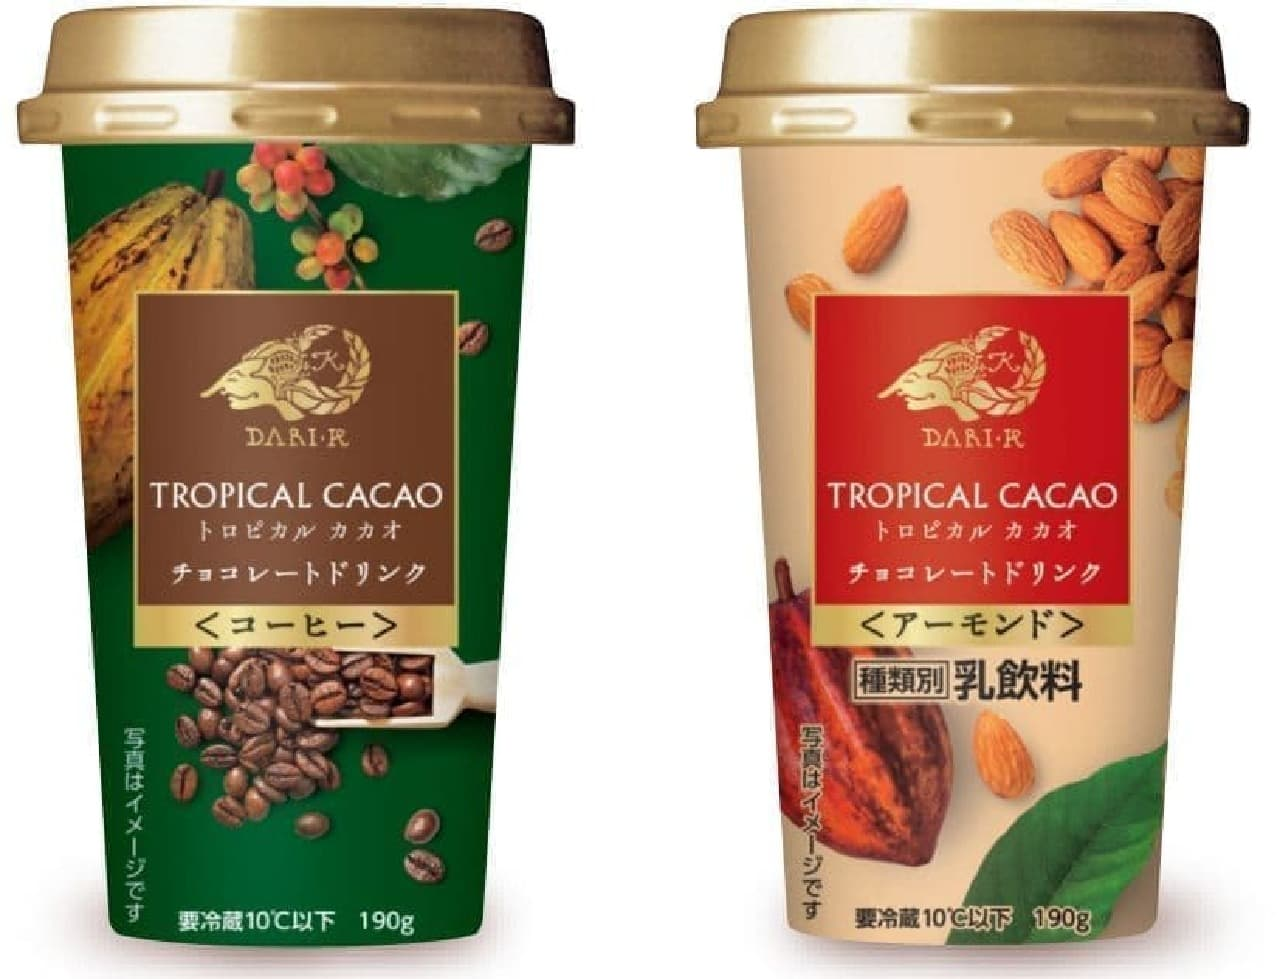 TROPICAL CACAO チョコレート・ドリンク